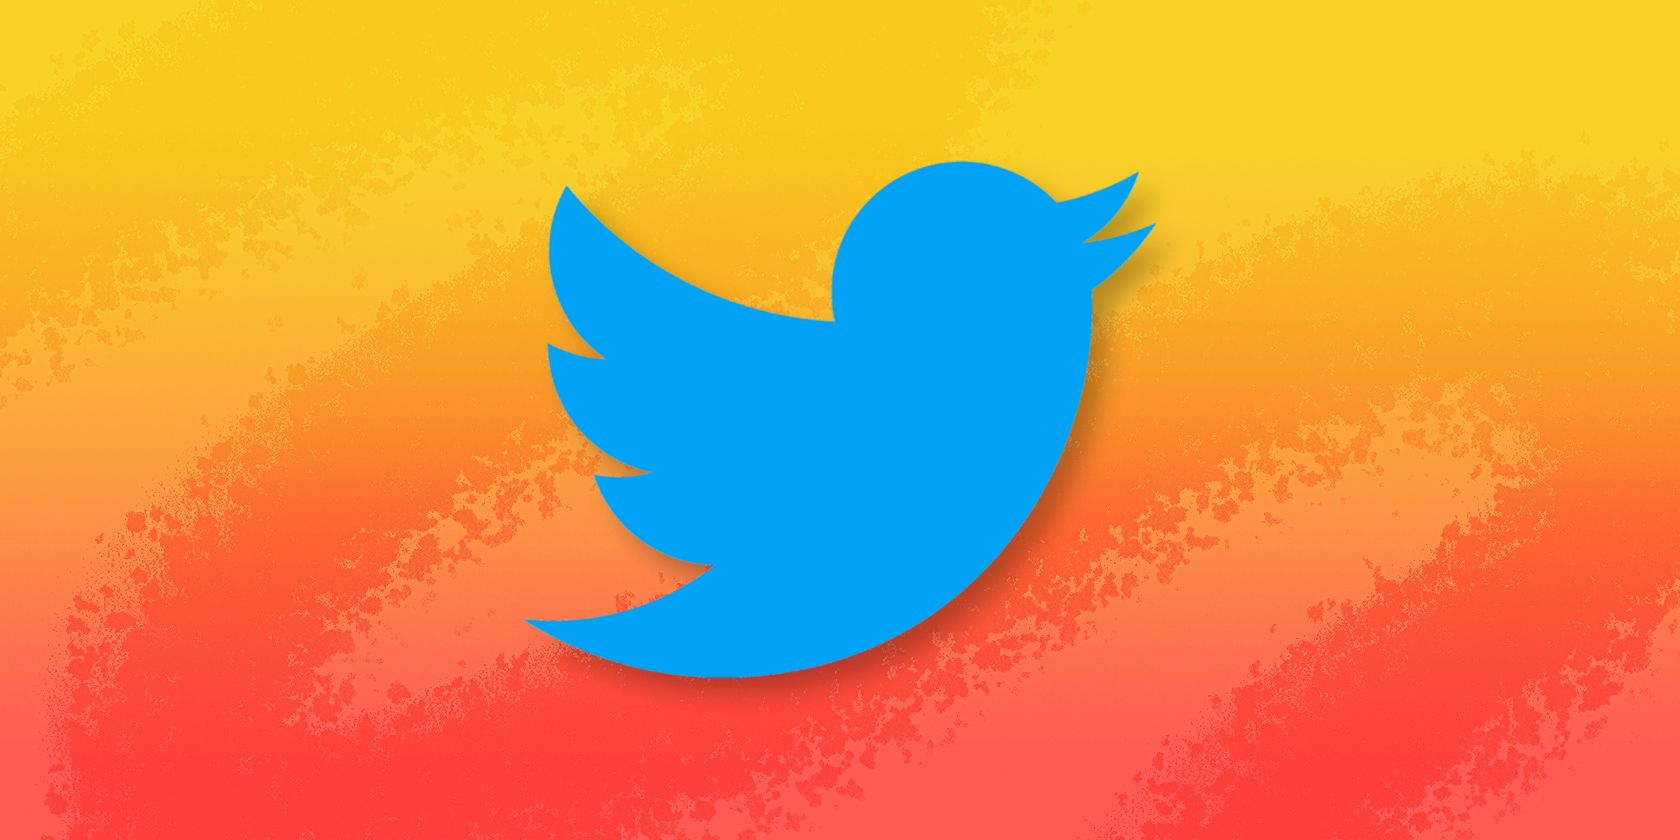 Twitter May Soon Let You Show How You Feel About Replies to Your Tweets